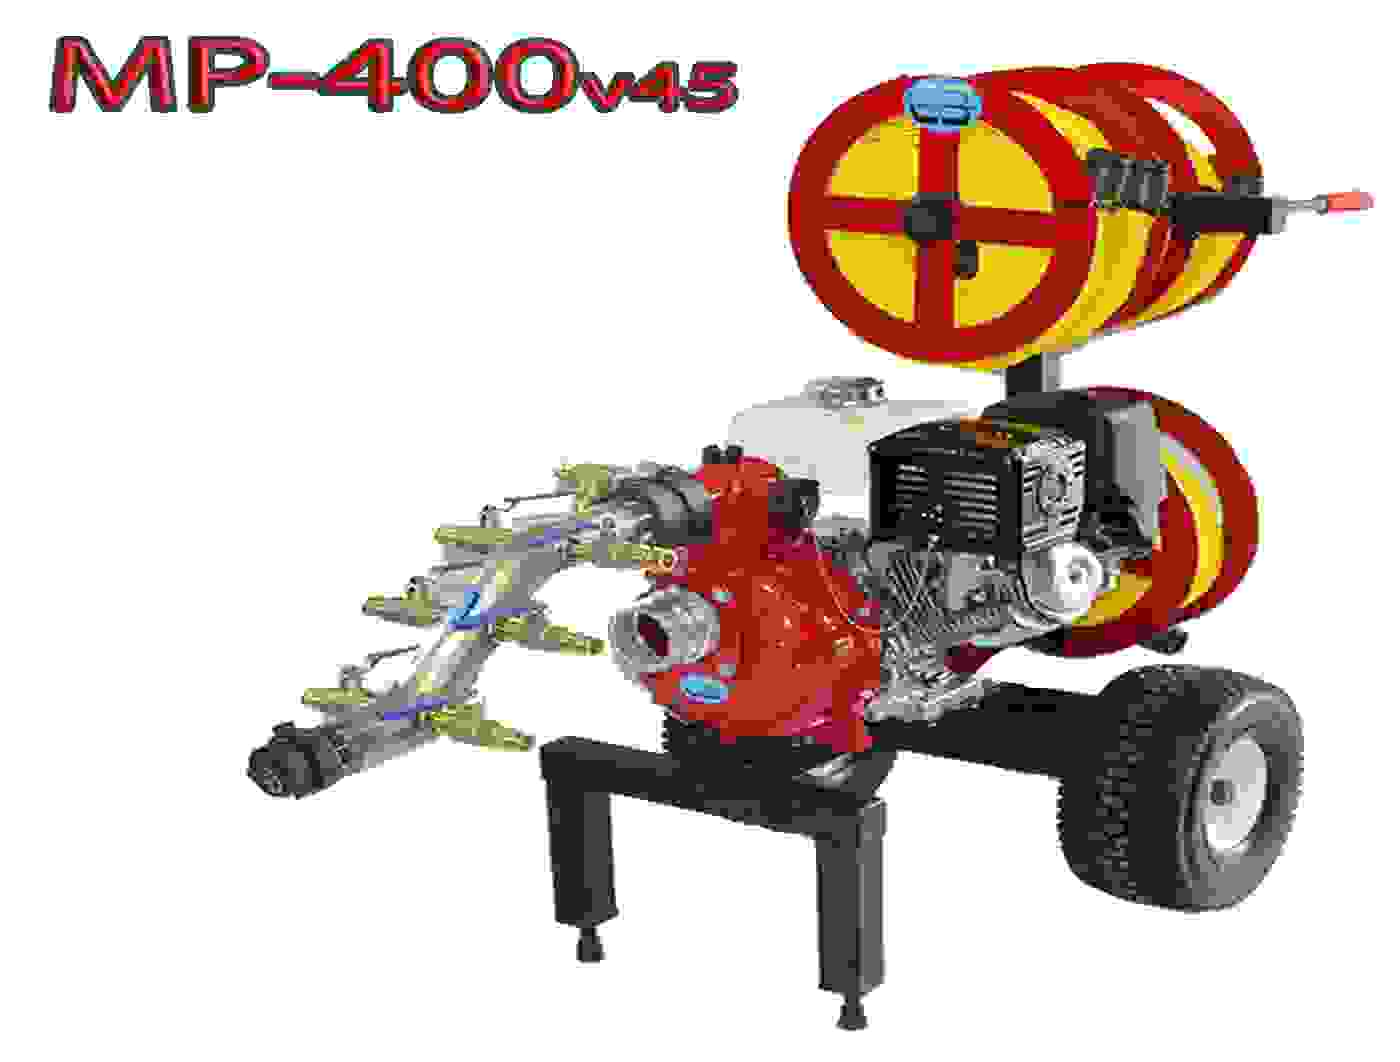 Code 3 water MP-400 v.45 wildfire mobile fire water pump cart system